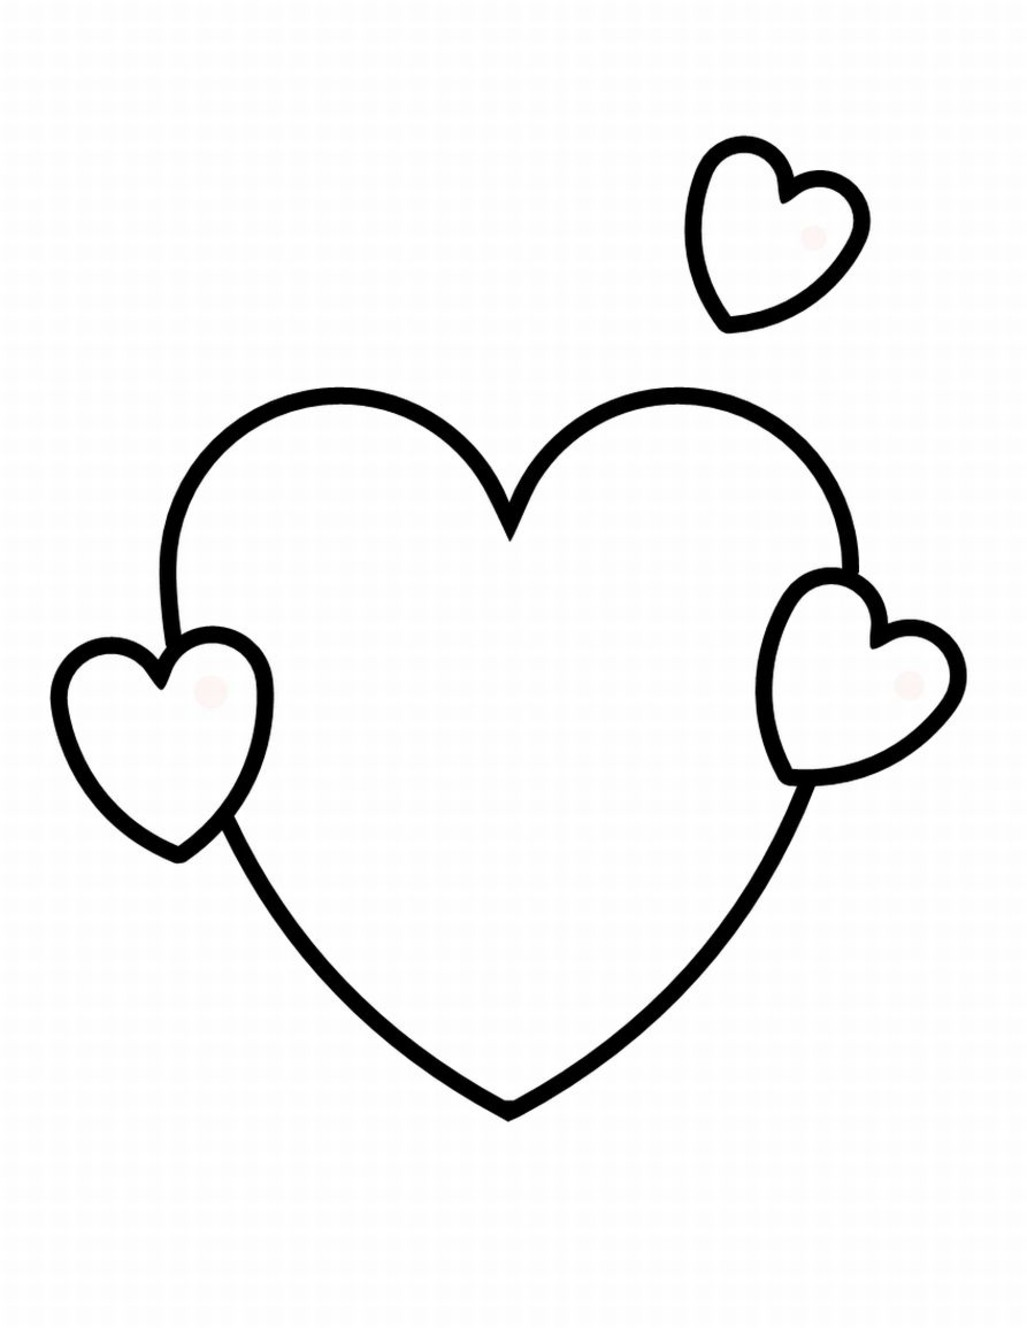 Heart Print Out Coloring Pages in 2020 | Heart coloring pages ... | 1328x1027